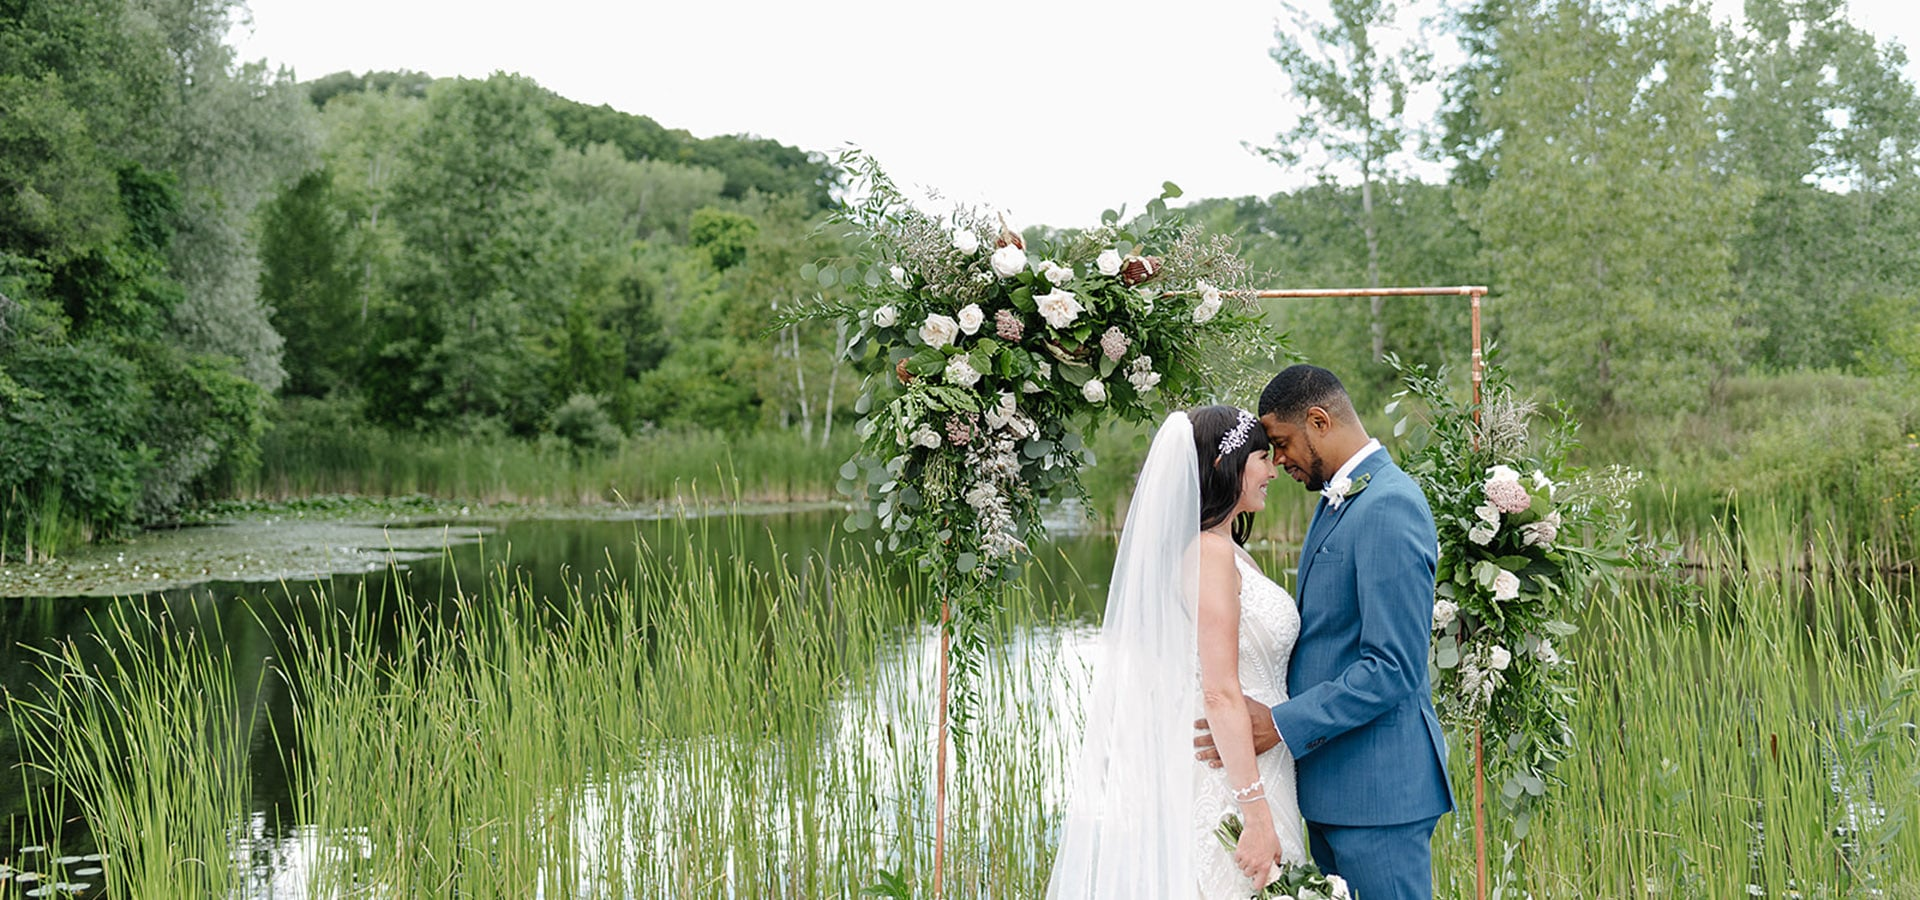 Hero image for Stephanie and Shaki's Tropical Meets Industrial Style Wedding at Evergreen Brick Works